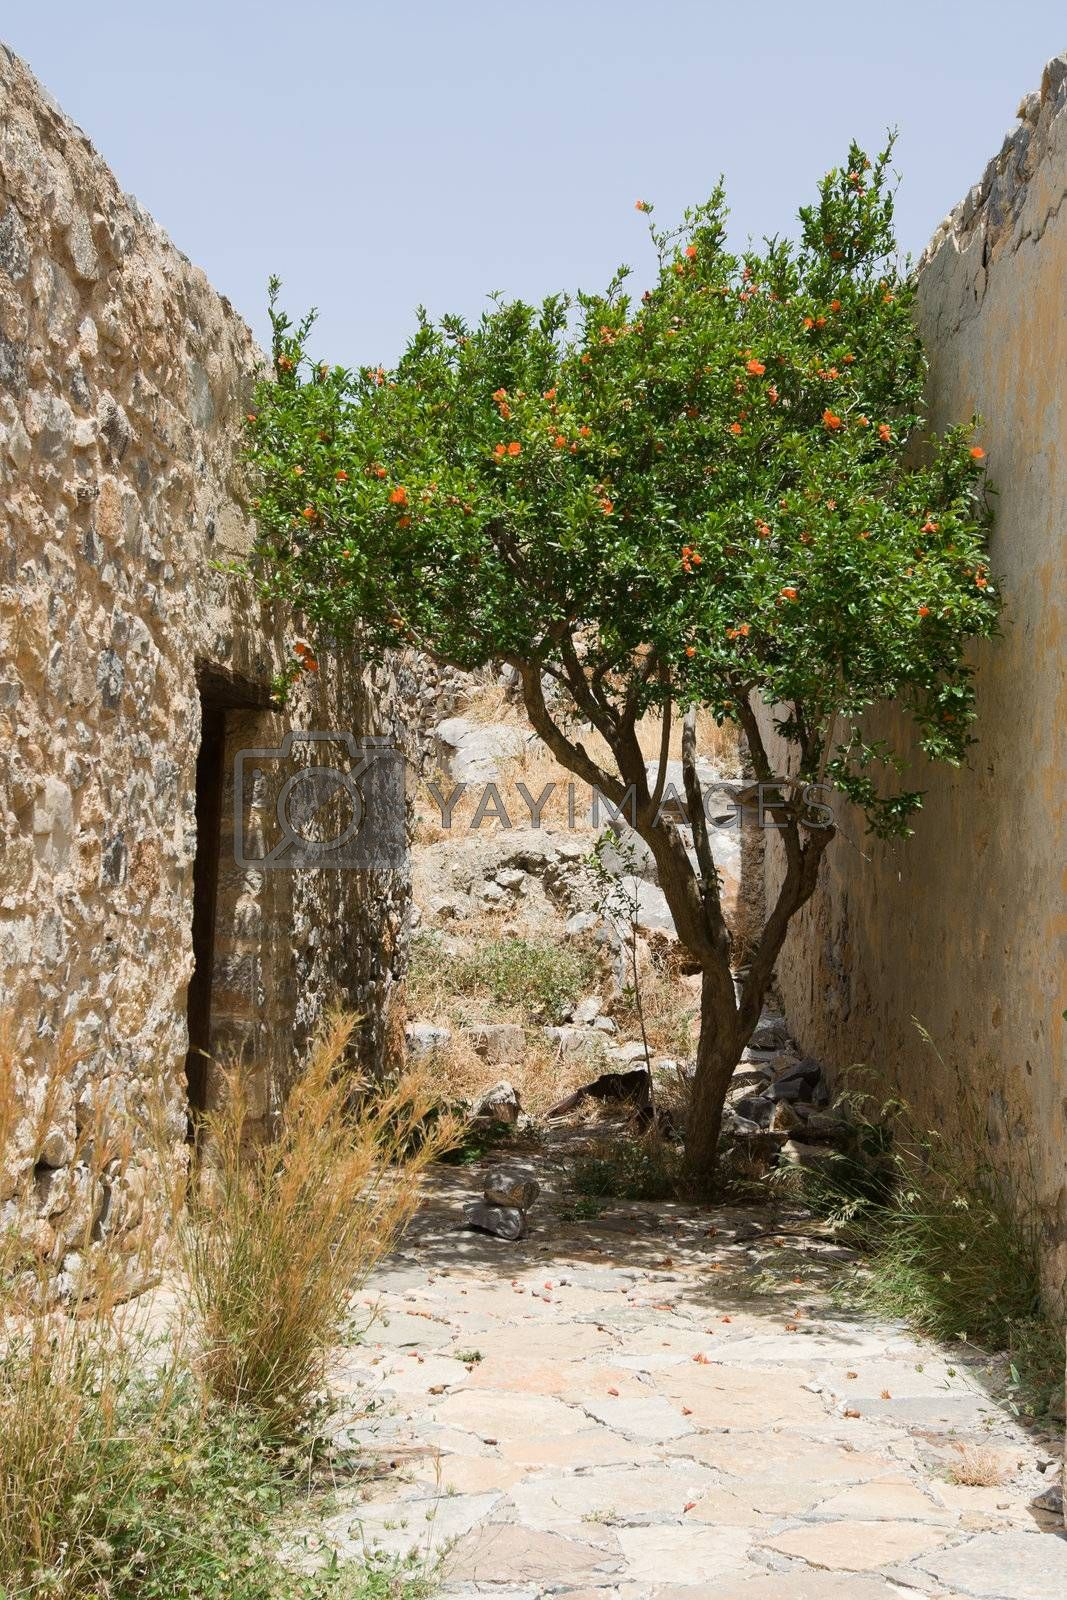 Flowering green straggled tree growing on narrow abandoned street of between stone walls of old houses in ancient town